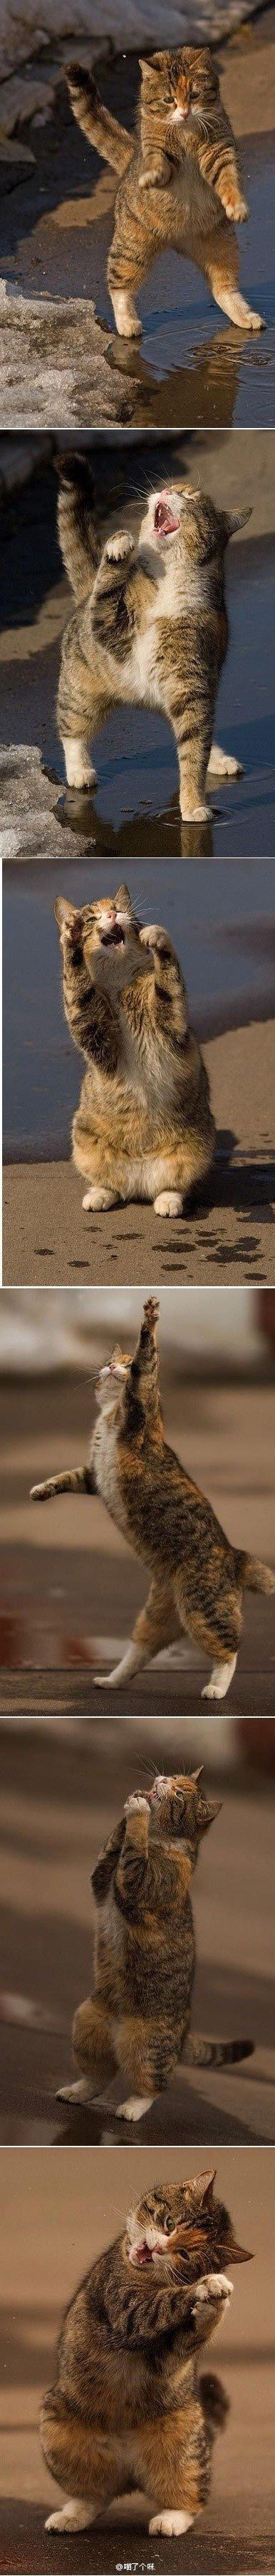 cats will be.......cats!: